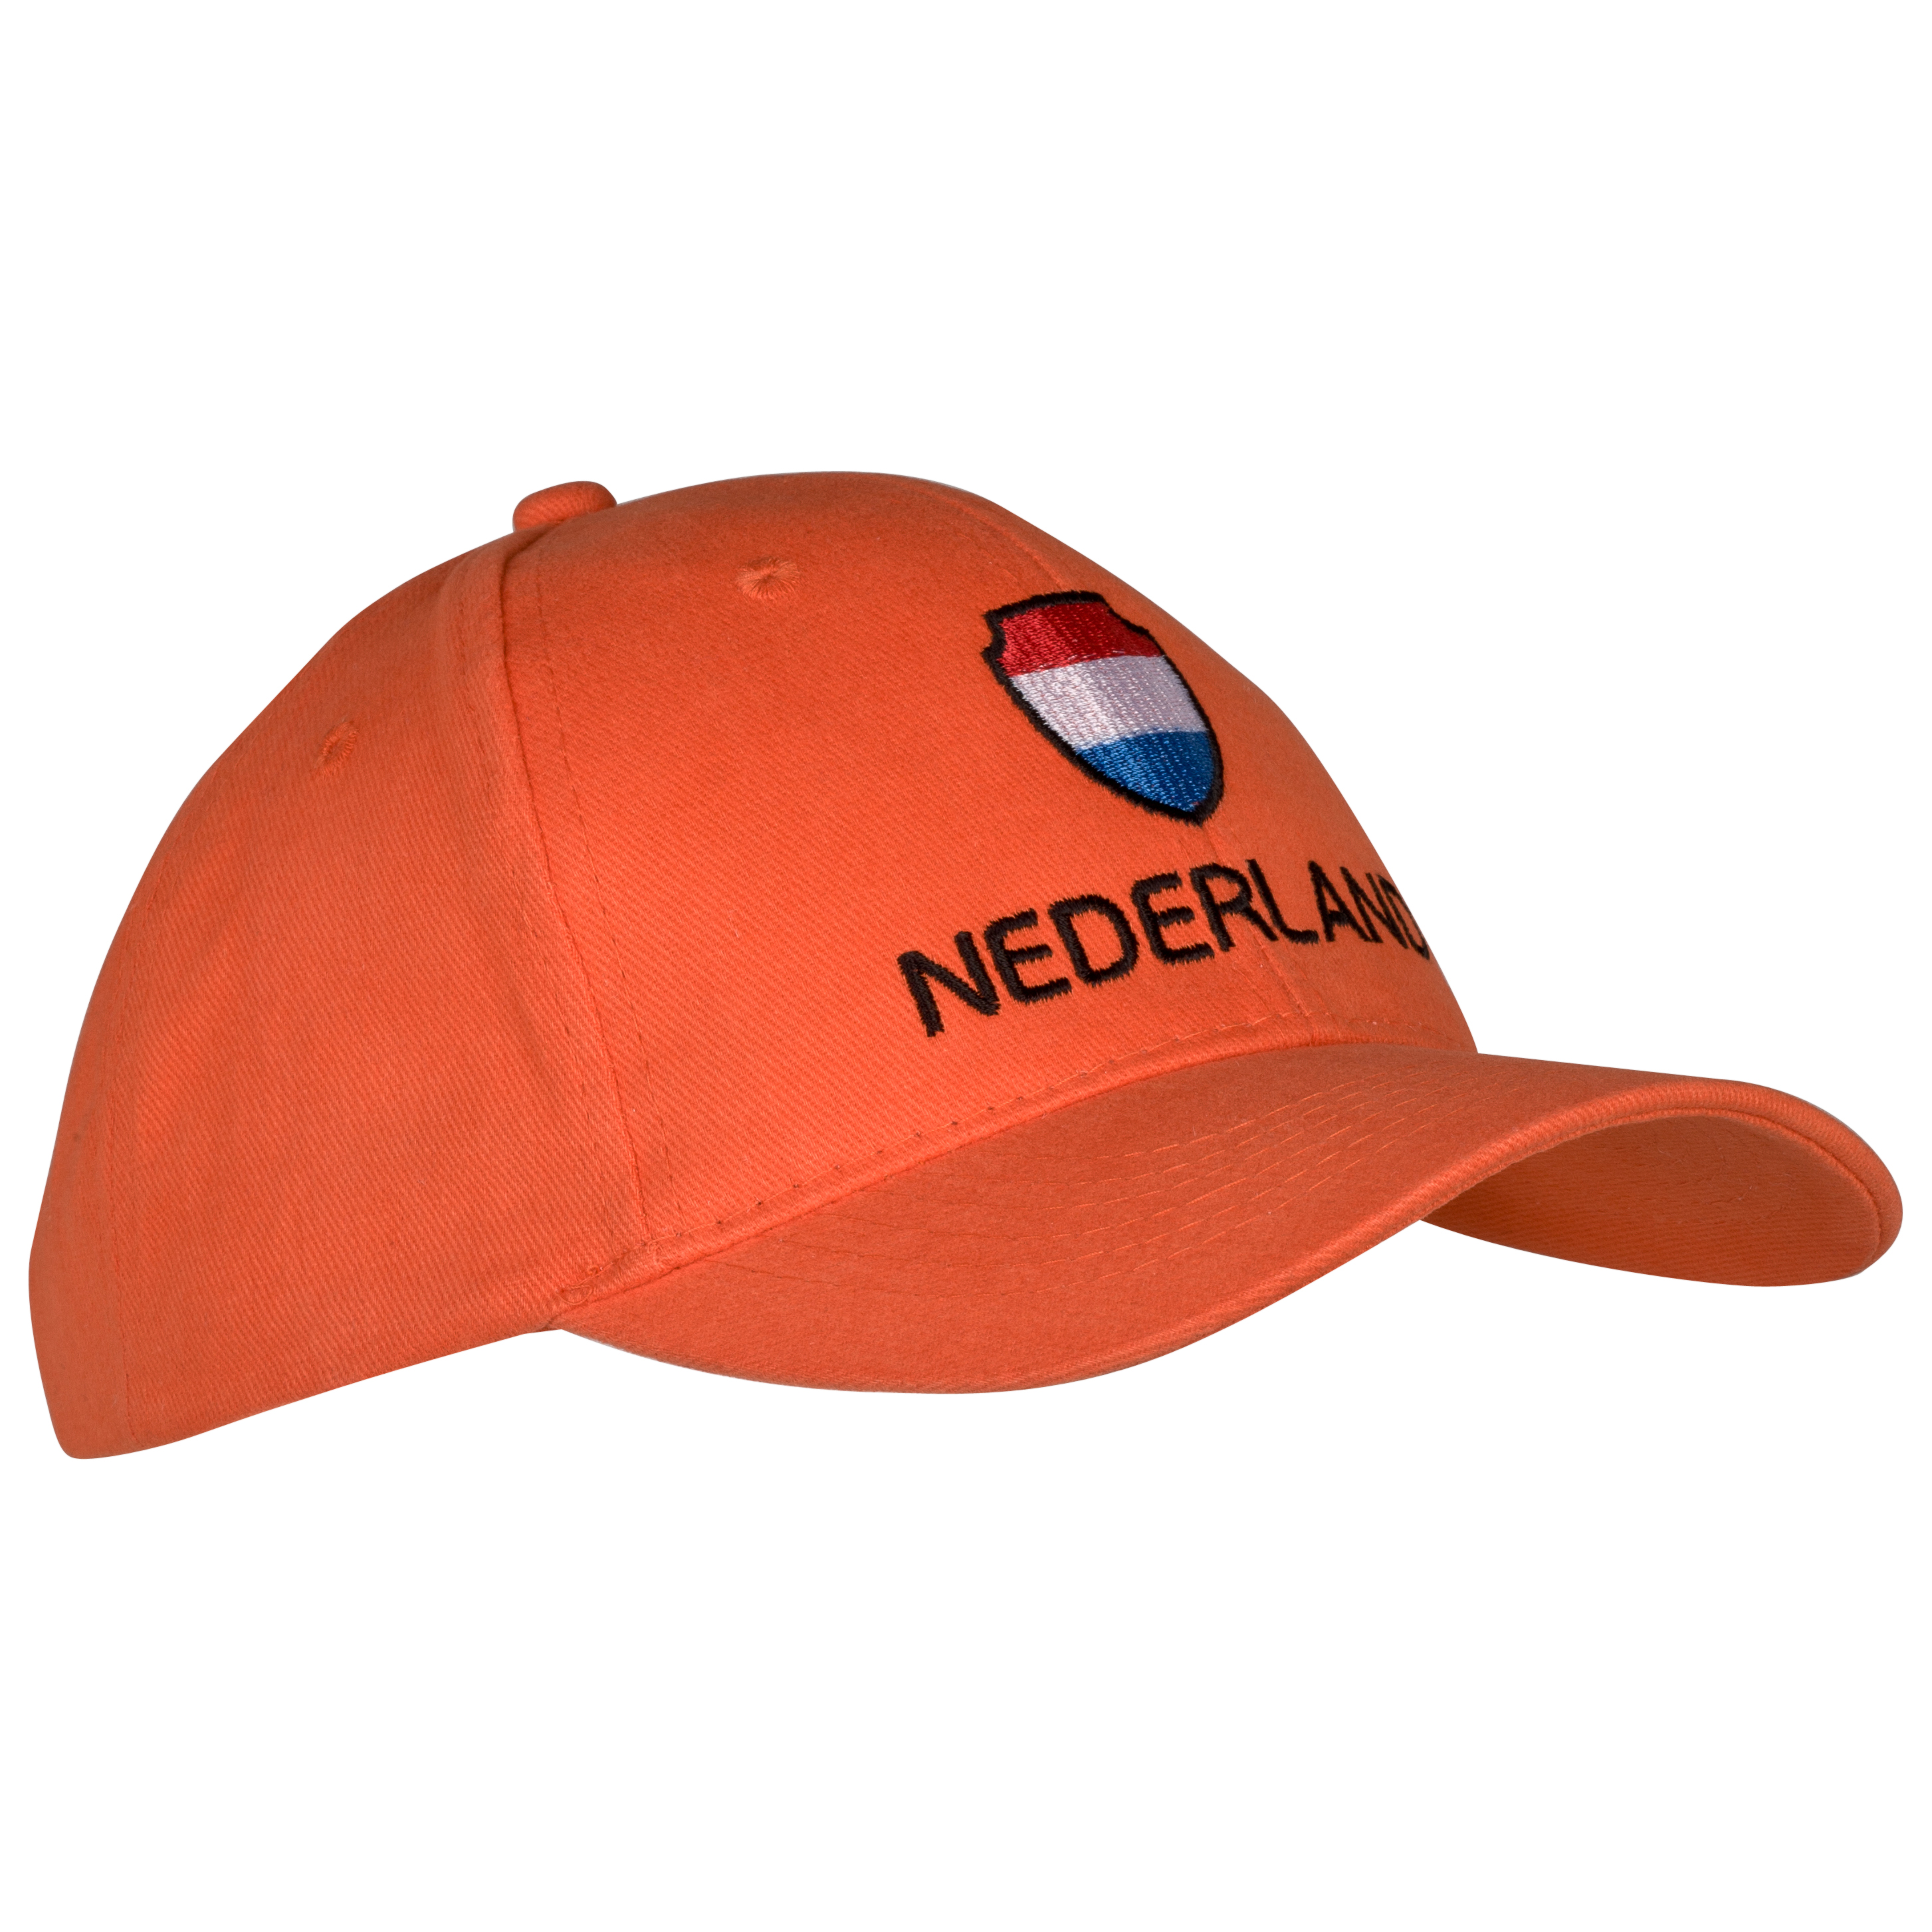 Euro 2012 Holland Cap - Orange/Black